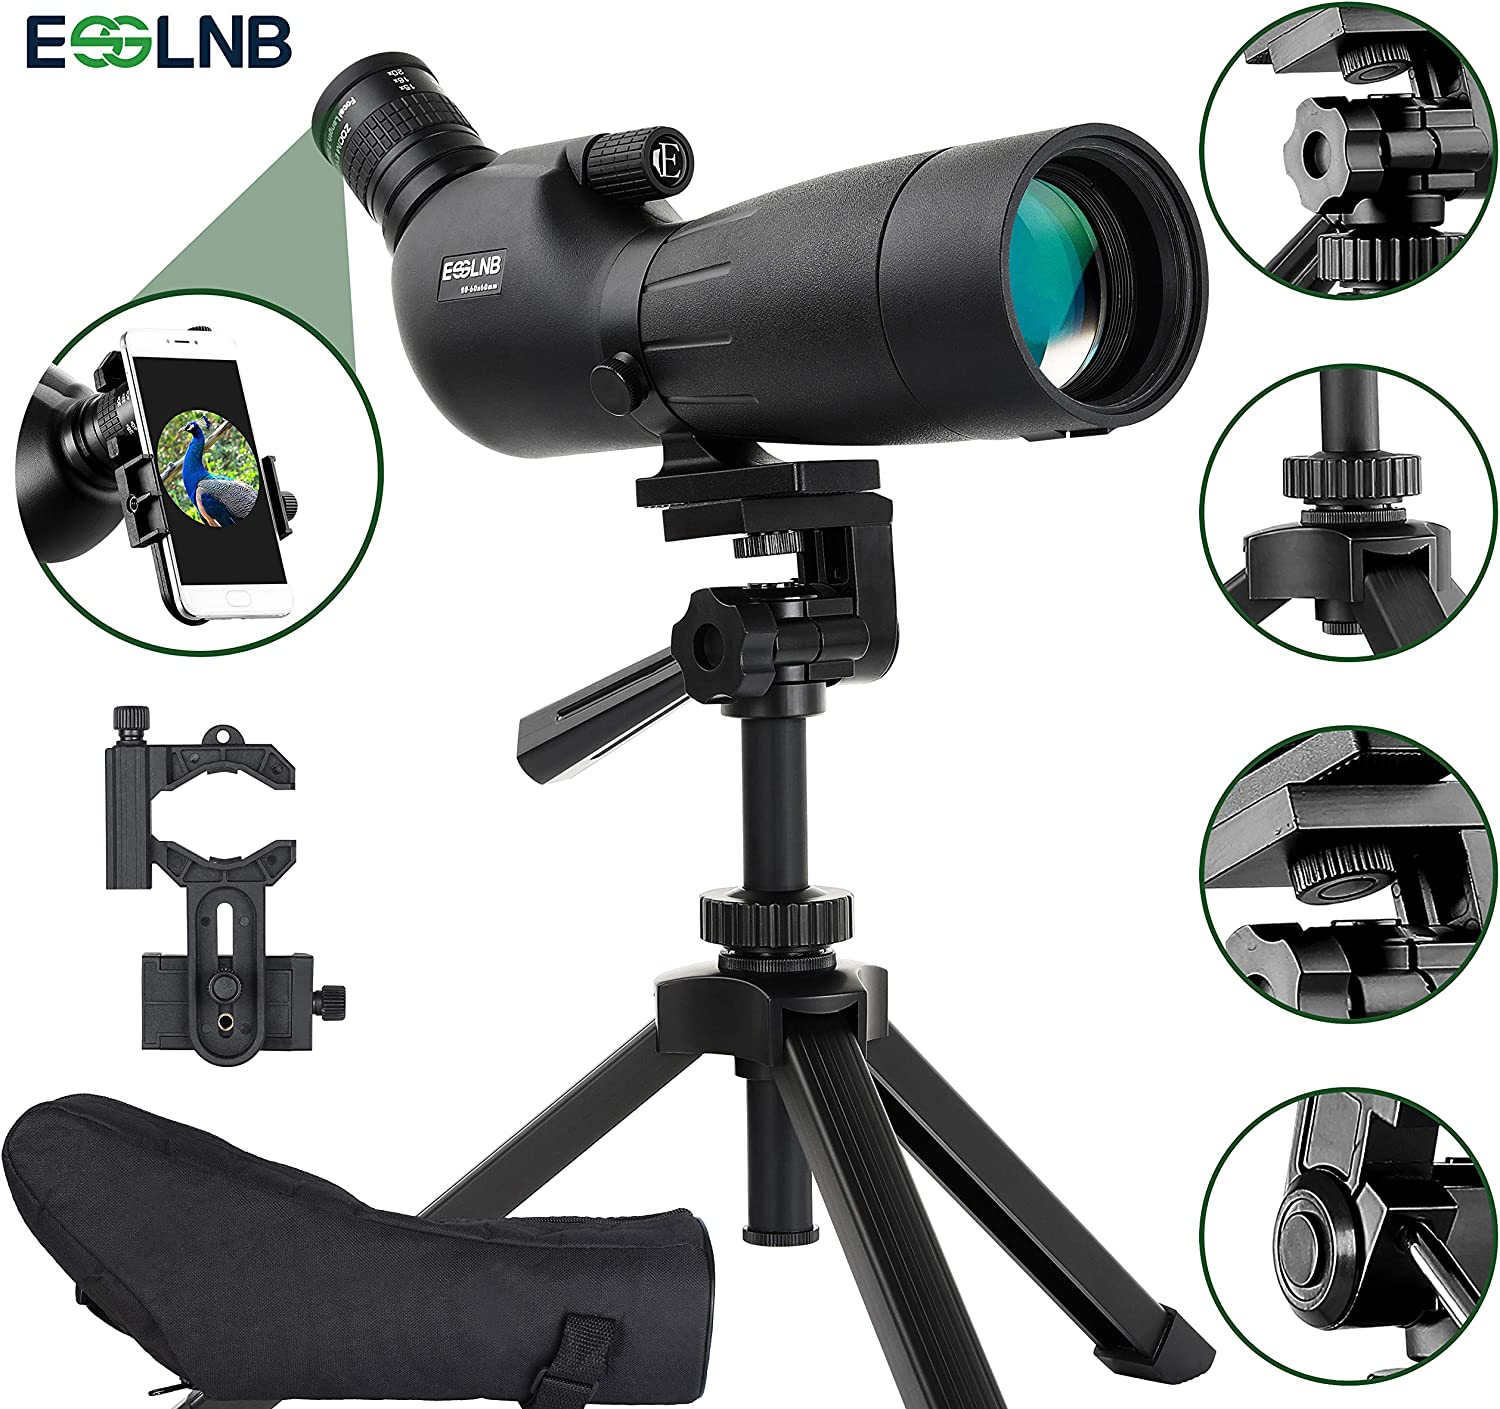 ESSLNB Spotting Scope with Tripod Phone Adapter BAK4 Waterproof Spotting Scopes for Hunting Target Shooting 20-60X with Carrying Bag